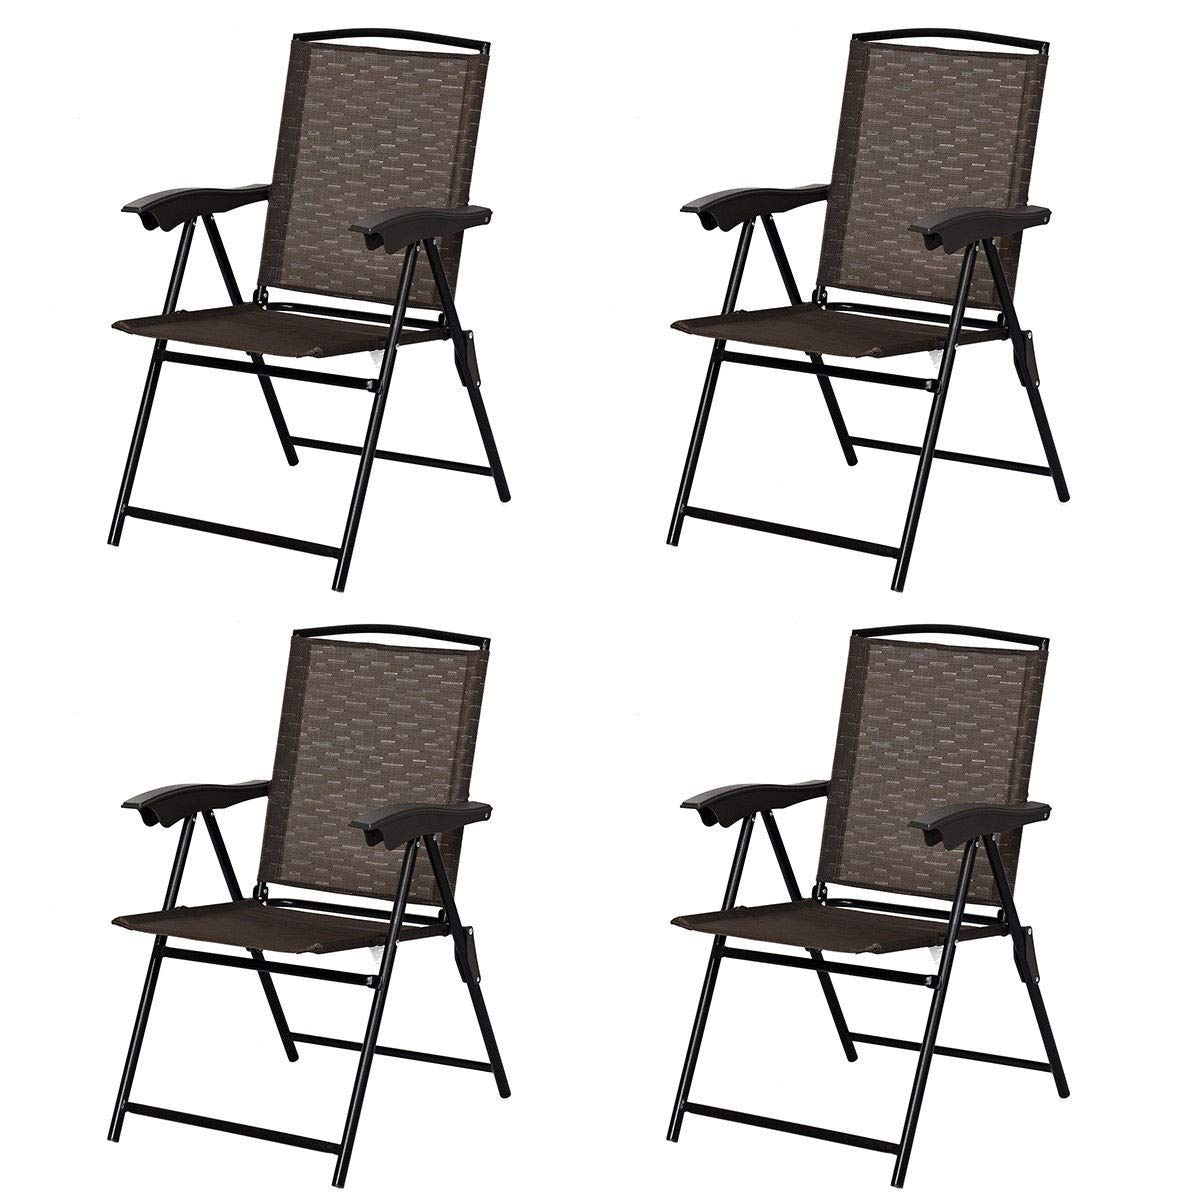 EnjoyShop2018 4 pcs Folding Sling Chairs with Steel Armrest and Adjustable Back Indoor Outdoor Camping